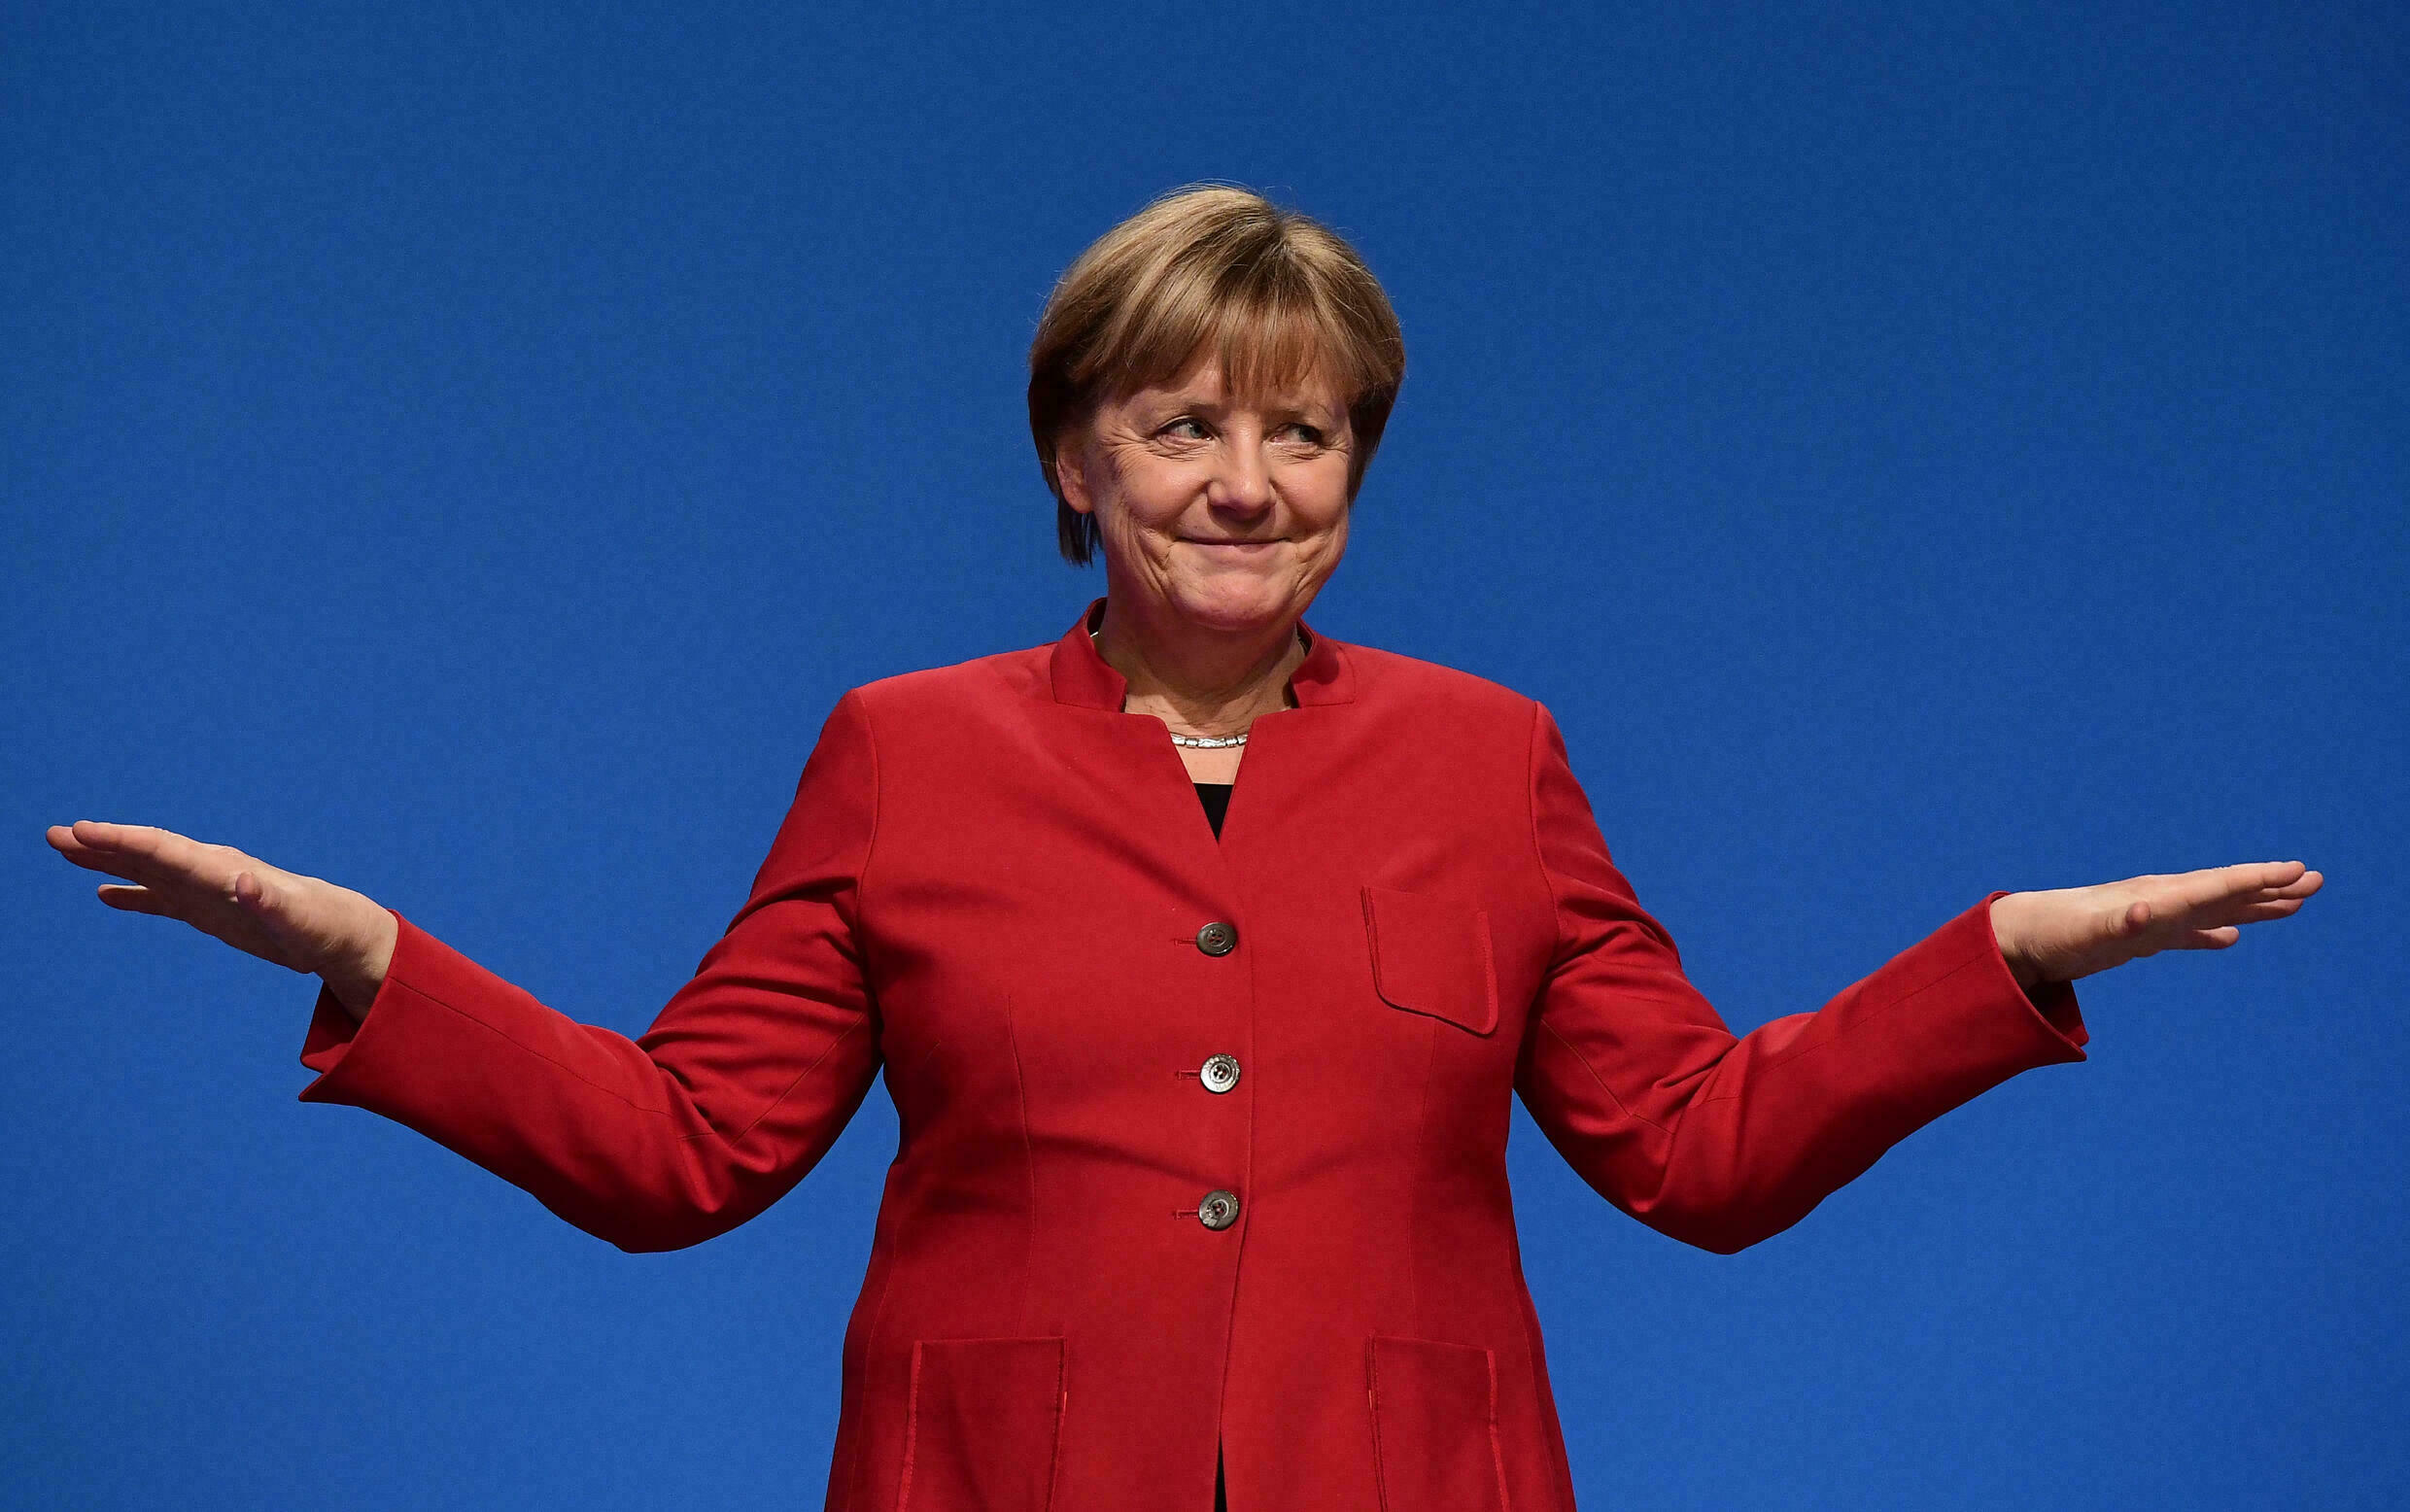 Merkel recently admitted she was 'shy' about the feminist label